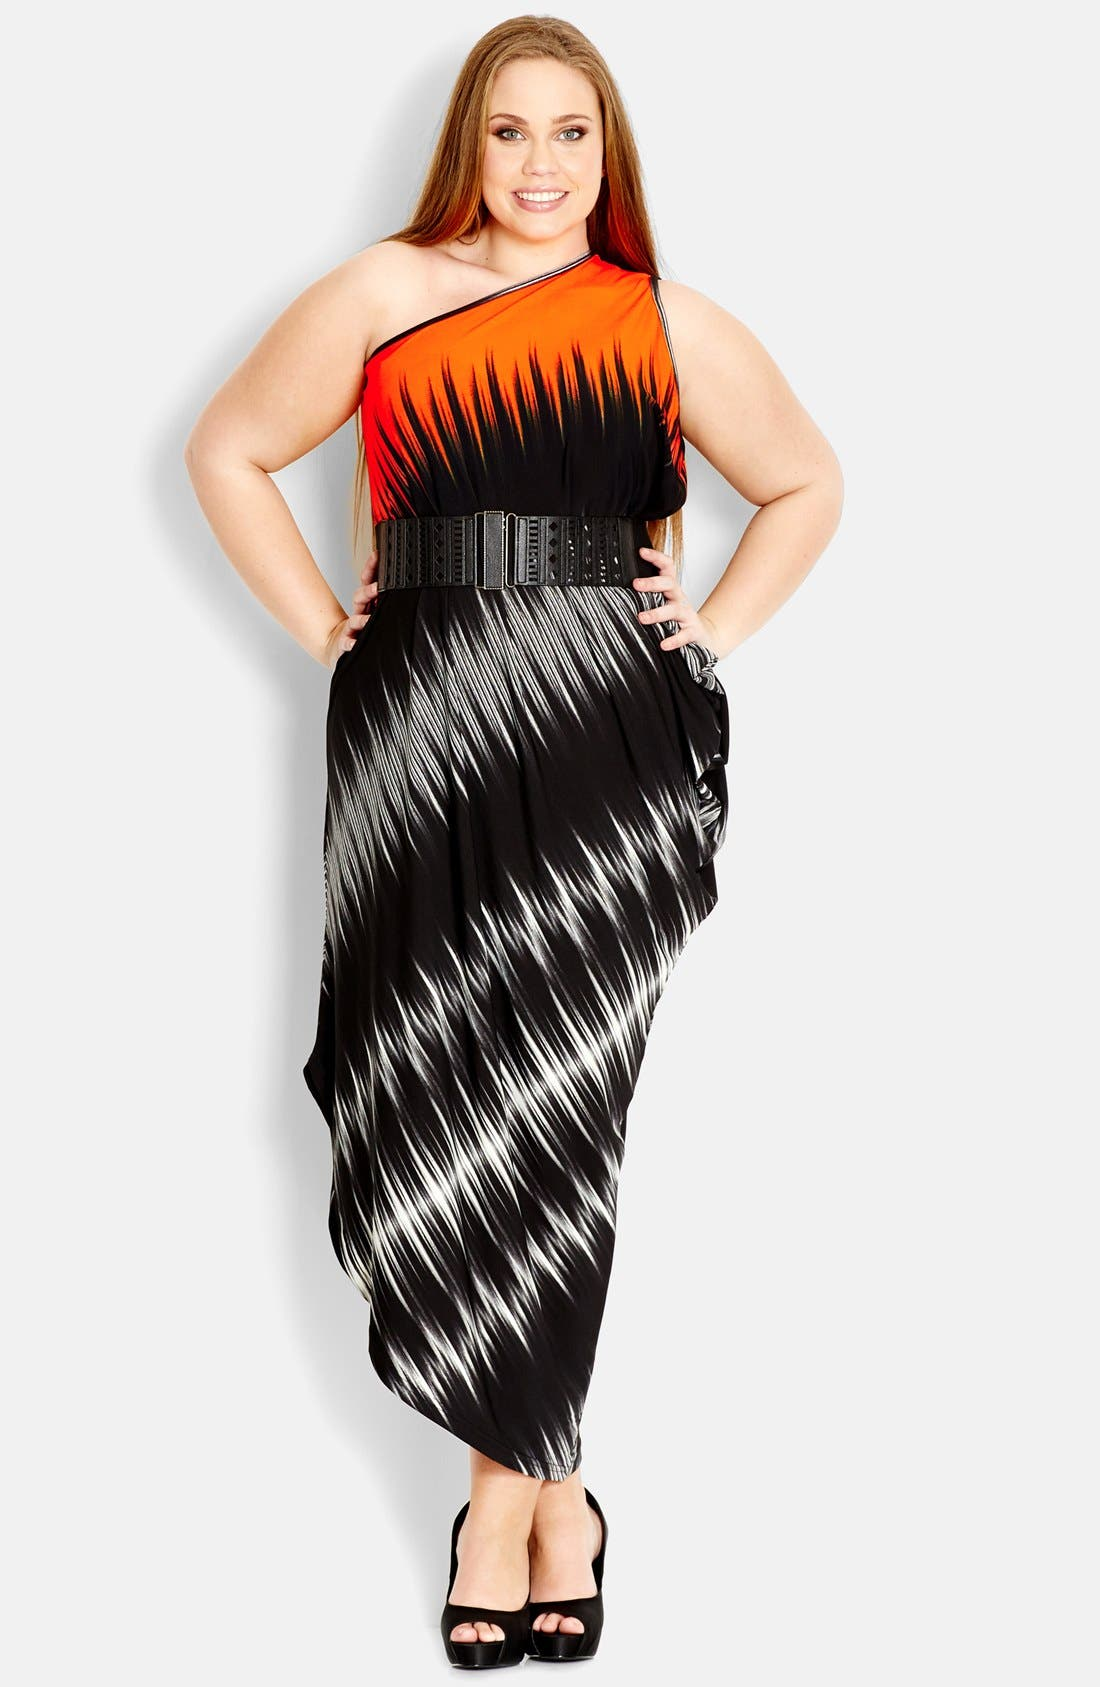 Alternate Image 1 Selected - City Chic One-Shoulder Dress (Plus Size)